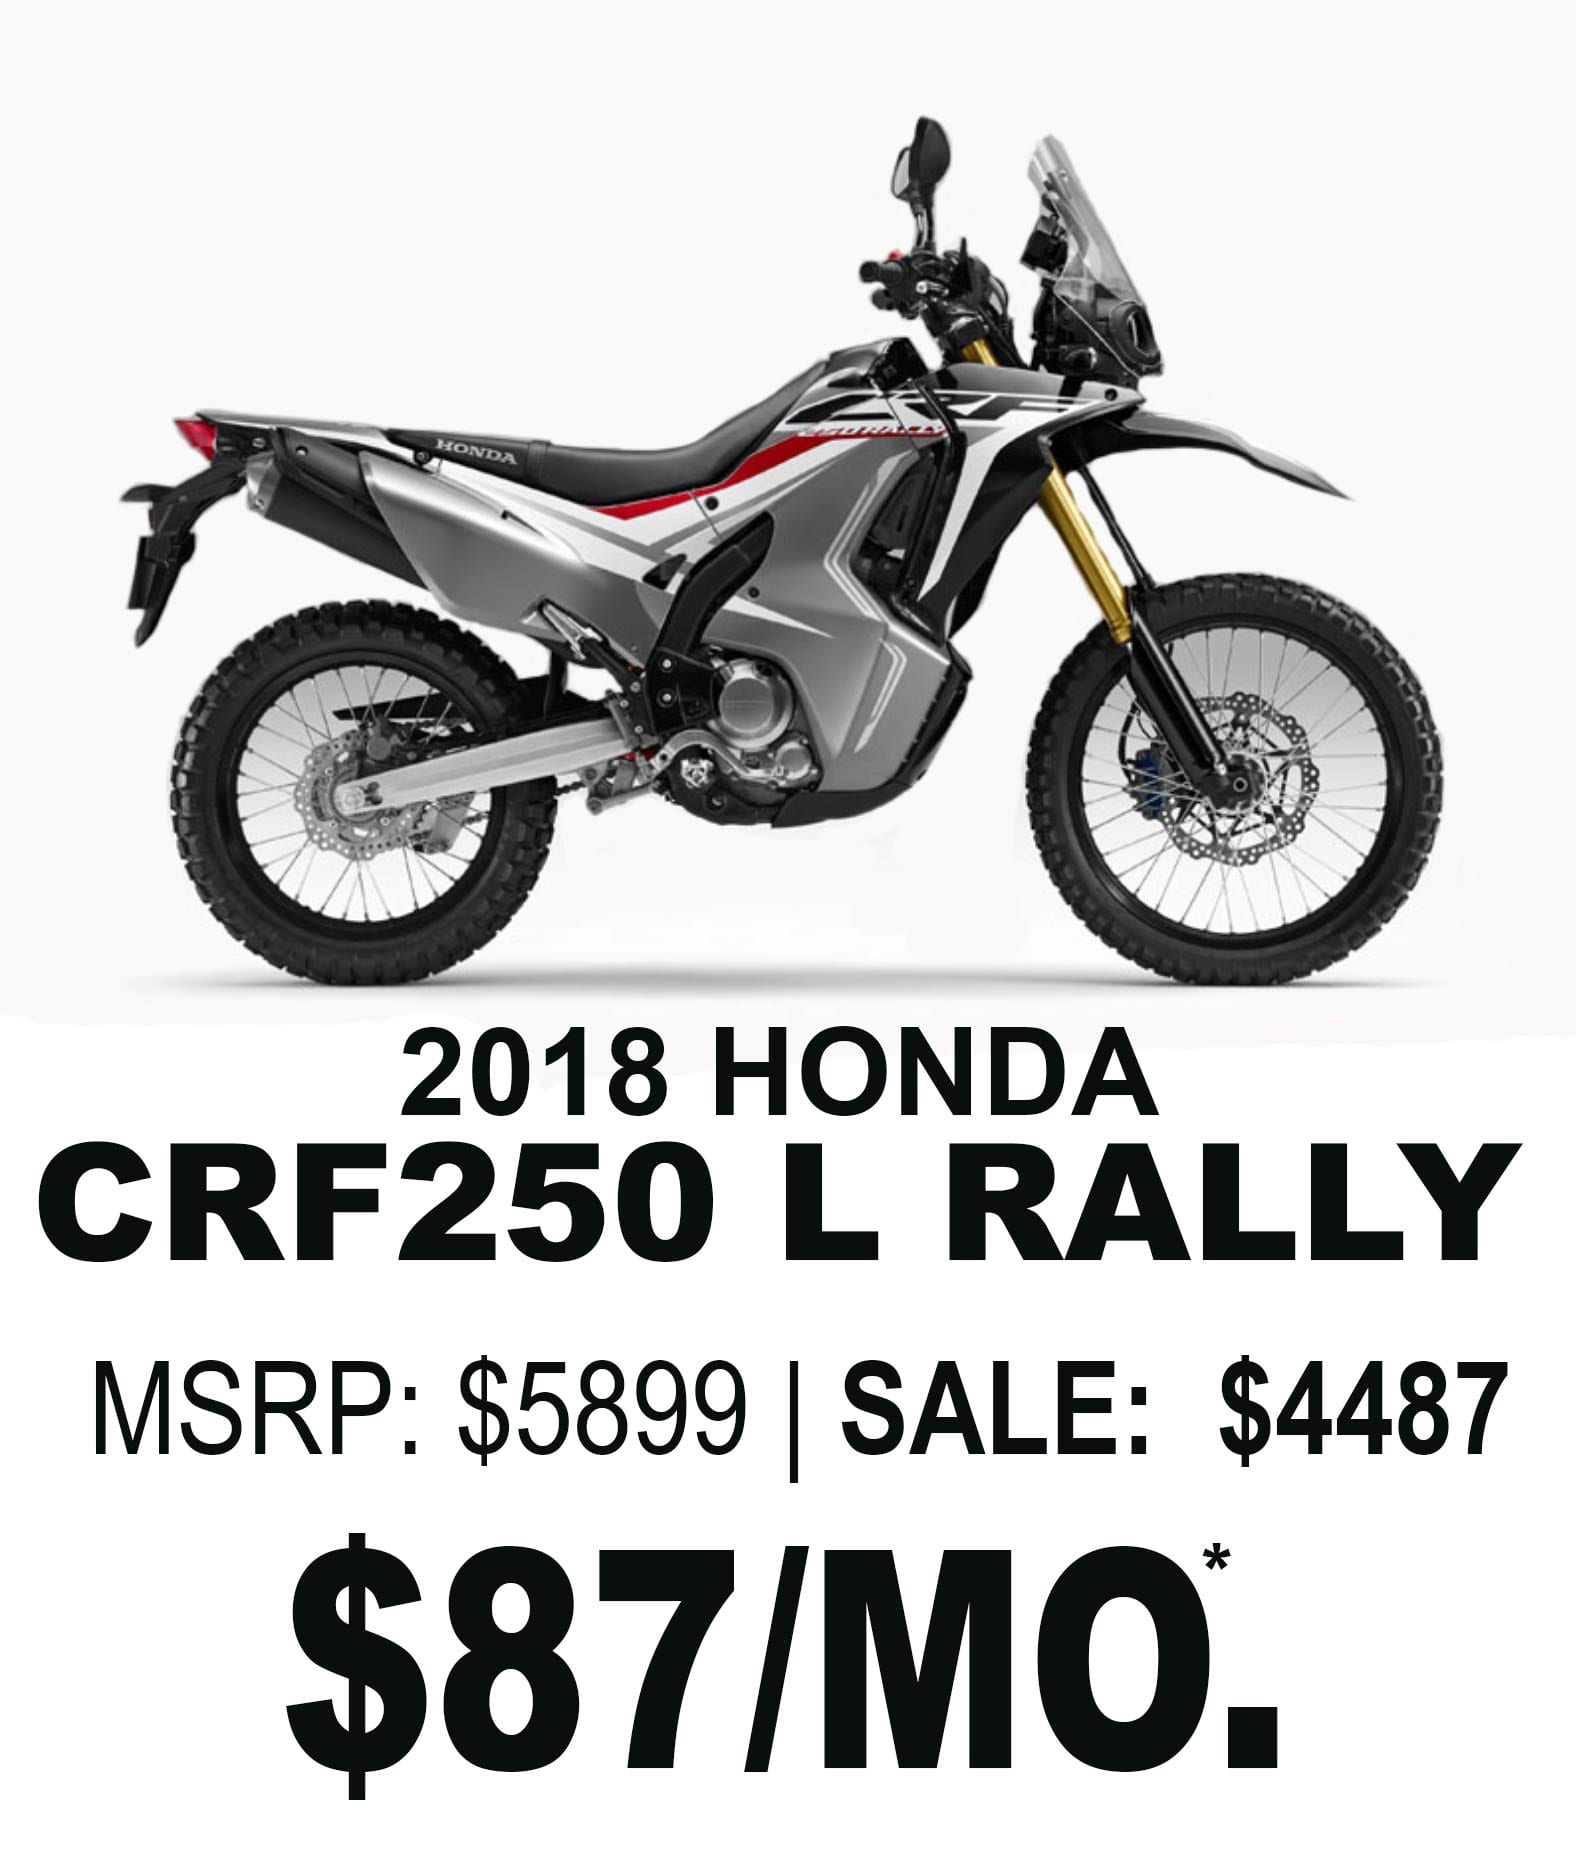 2018-honda-crf250l-rally